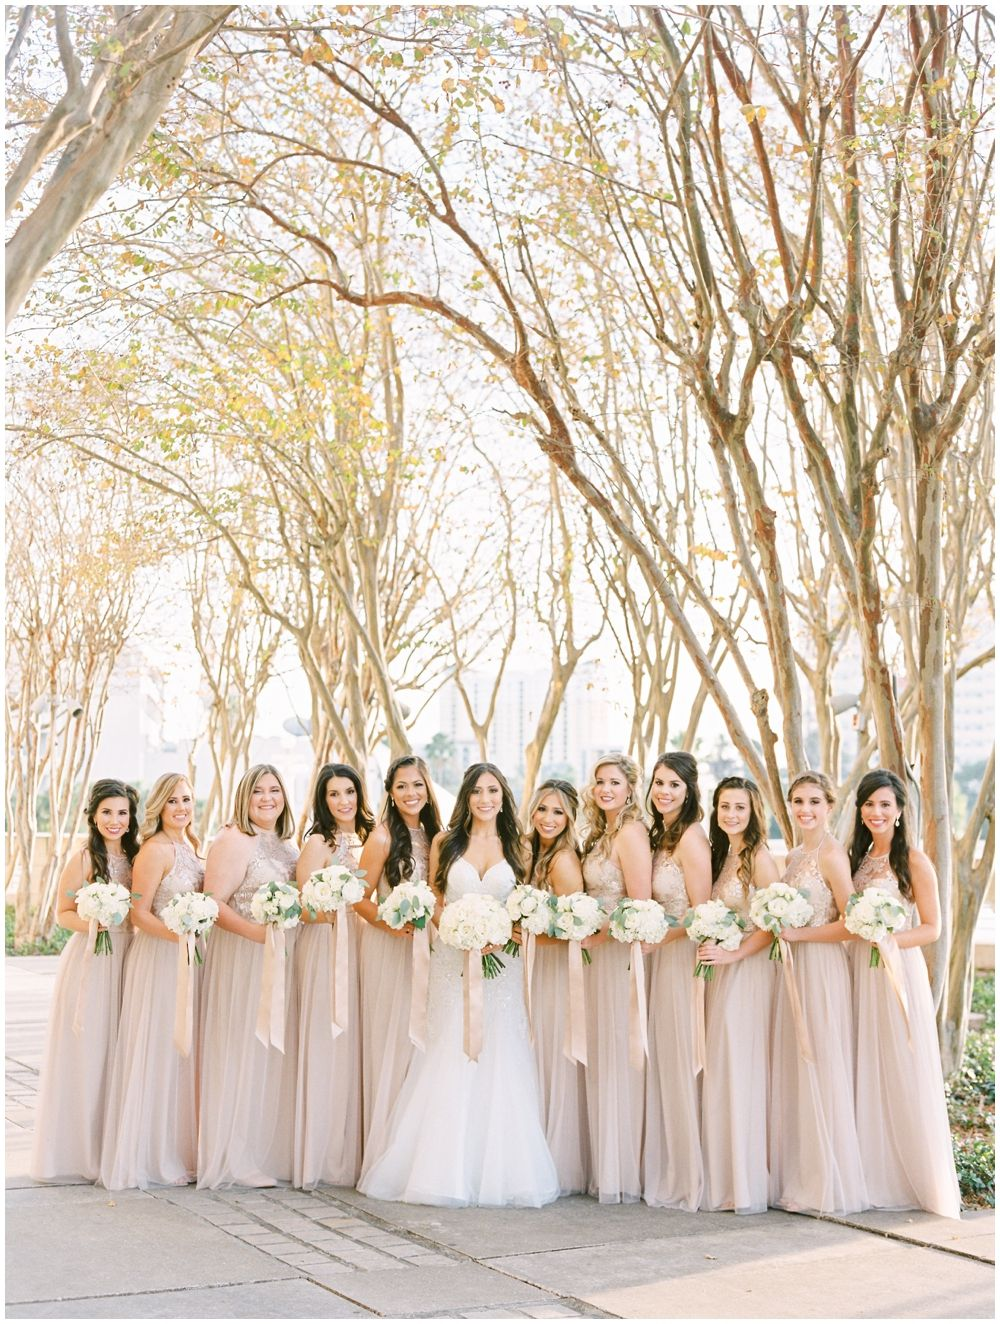 Bride And Bridesmaids Bouquets Downtown Tampa Wedding Rentals Tampa Wedding Brides And Bridesmaids Wedding Rental Company